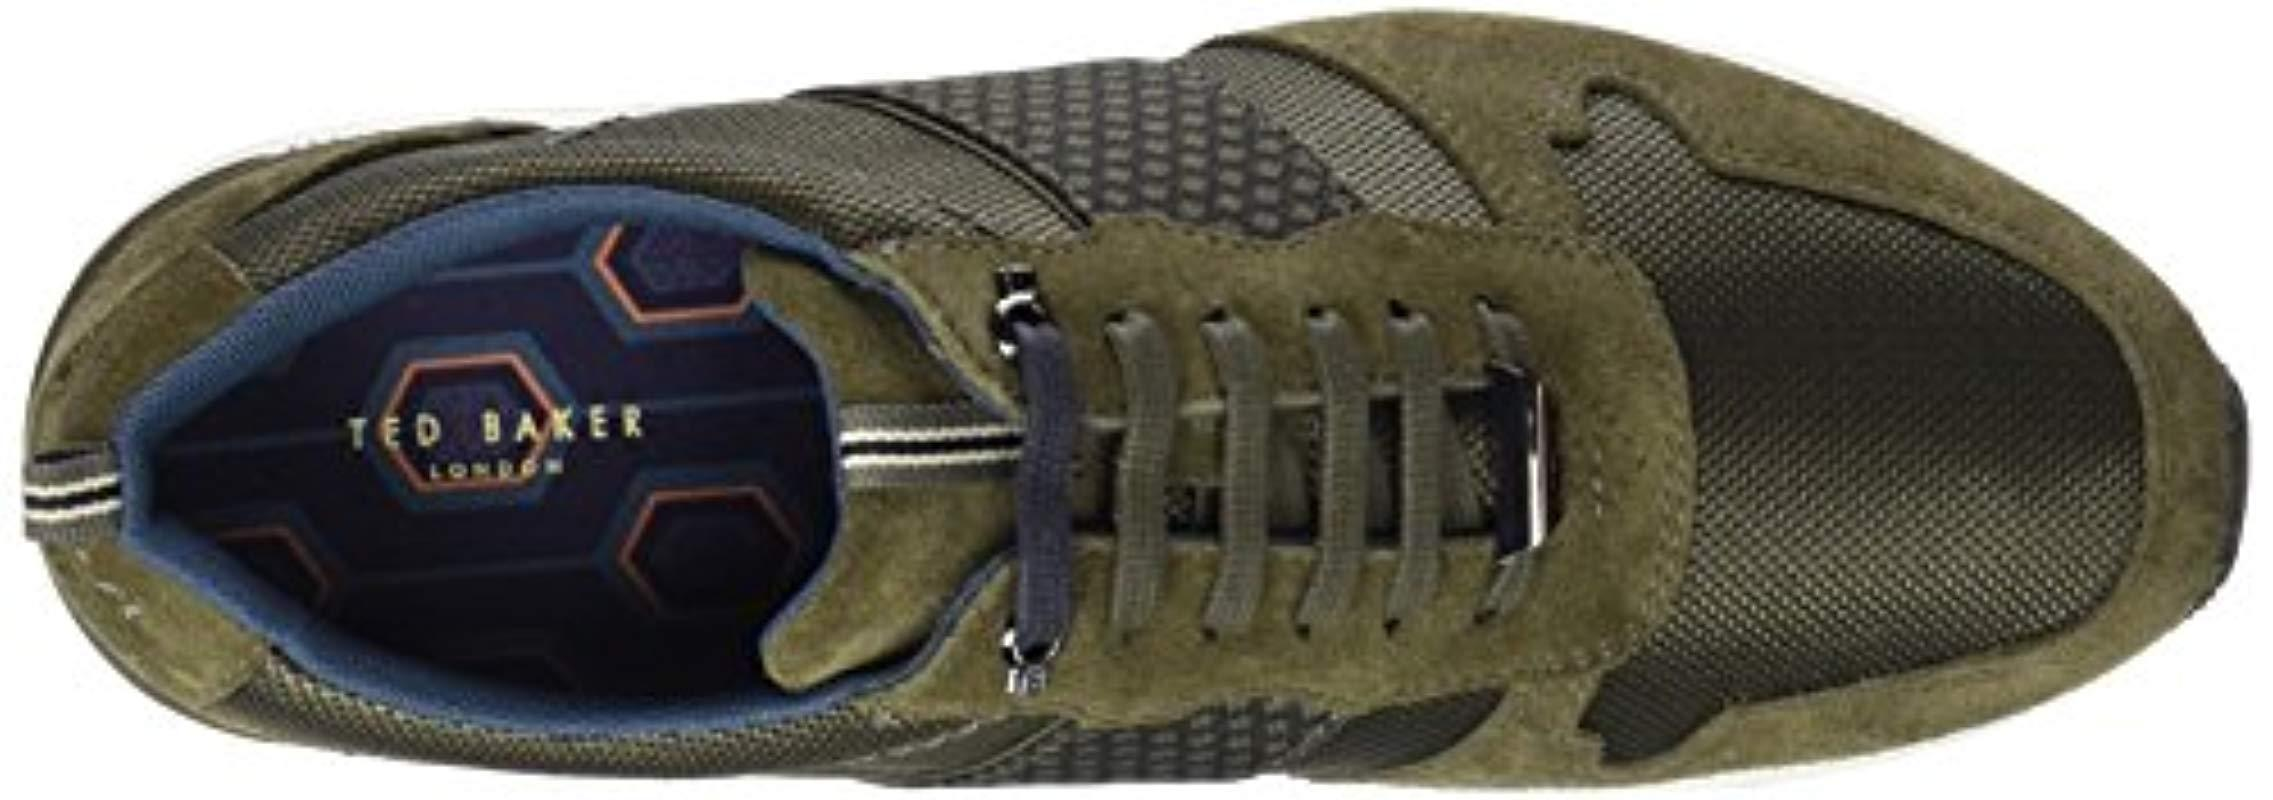 Ted Baker Suede Hebey Runner Style Trainers in Dark Green (Green) for Men